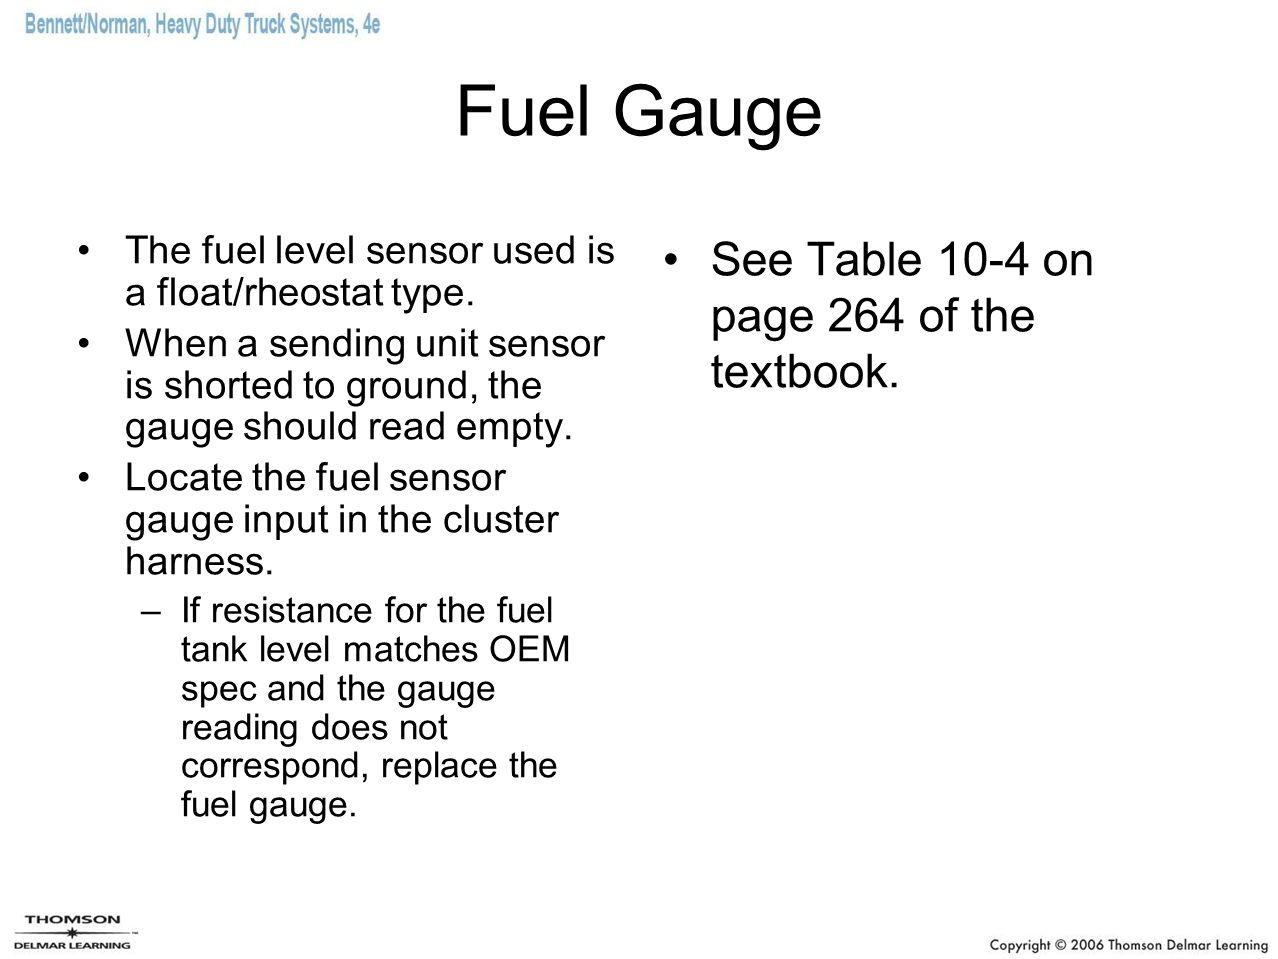 Fuel Gauge See Table 10-4 on page 264 of the textbook.